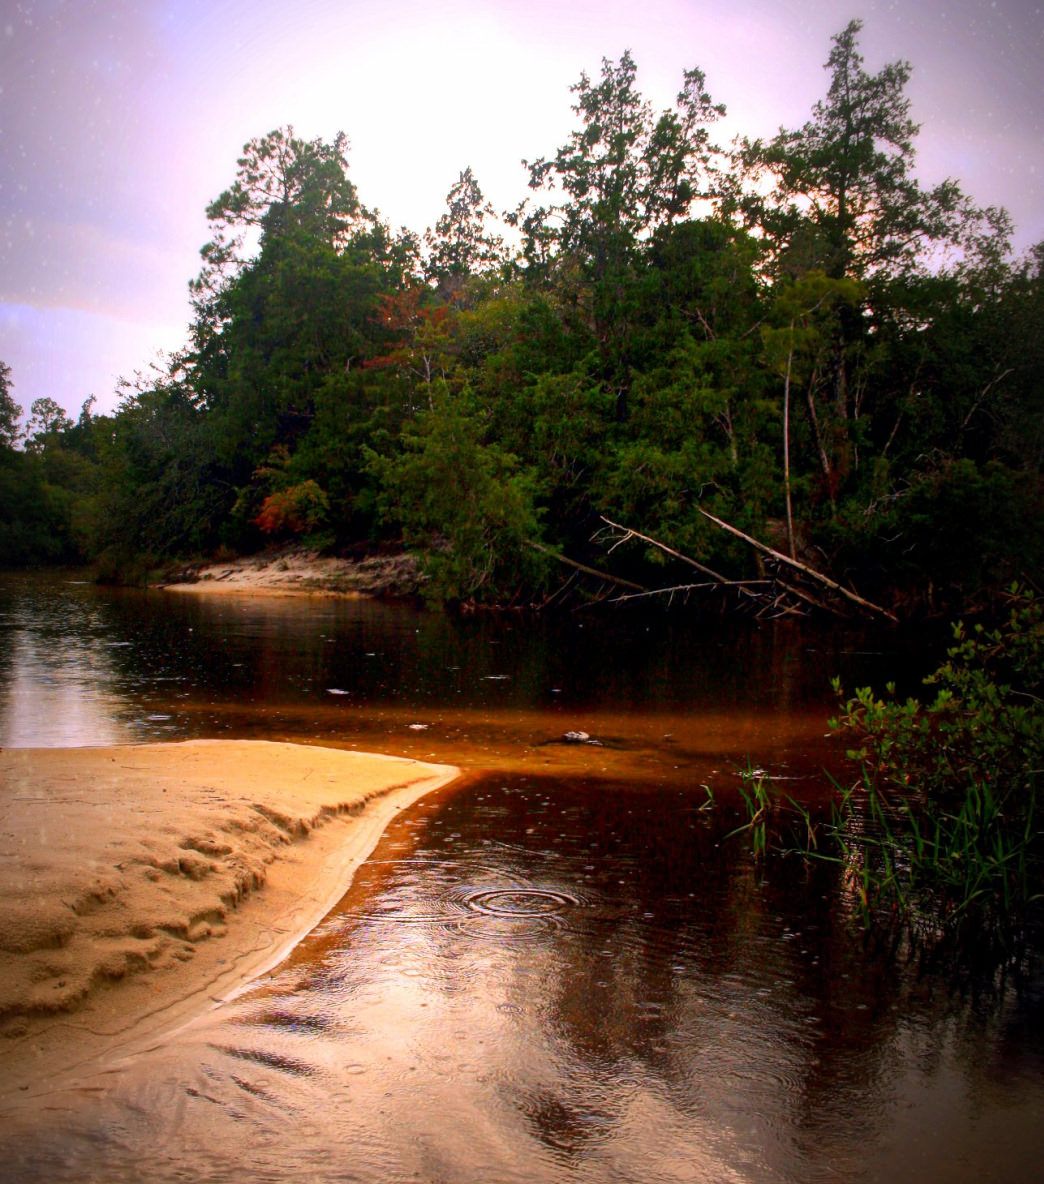 The Blackwater River winds through cypress swamps and pine forests on its route to the Gulf of Mexico.